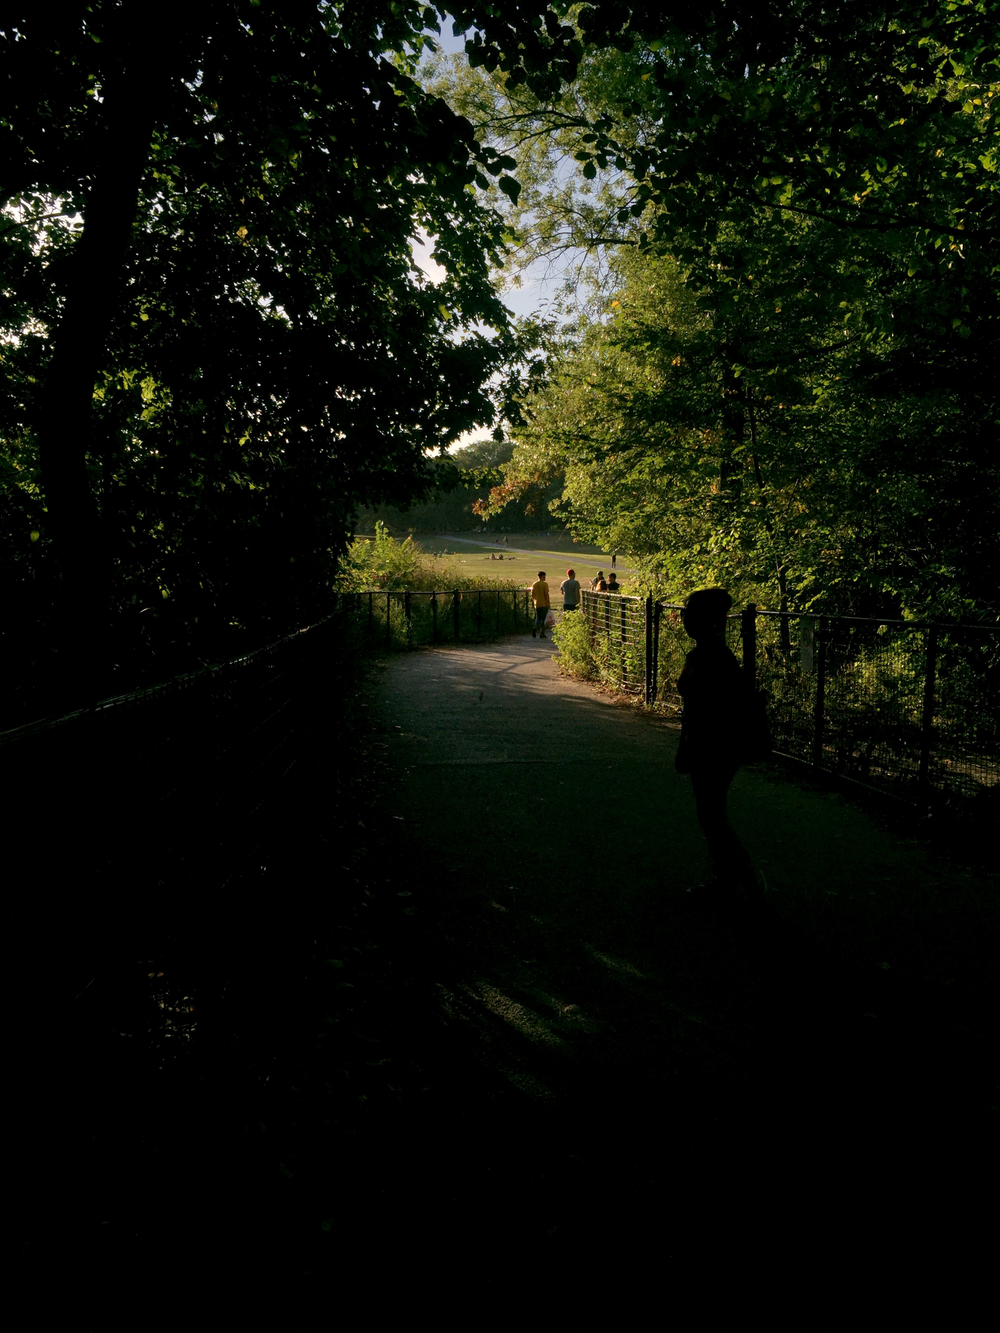 A walking trail in Prospect Park, Brooklyn draped in shadow while the upcoming meadow is drenched in sunshine, in late afternoon on a September day - September 5, 2015